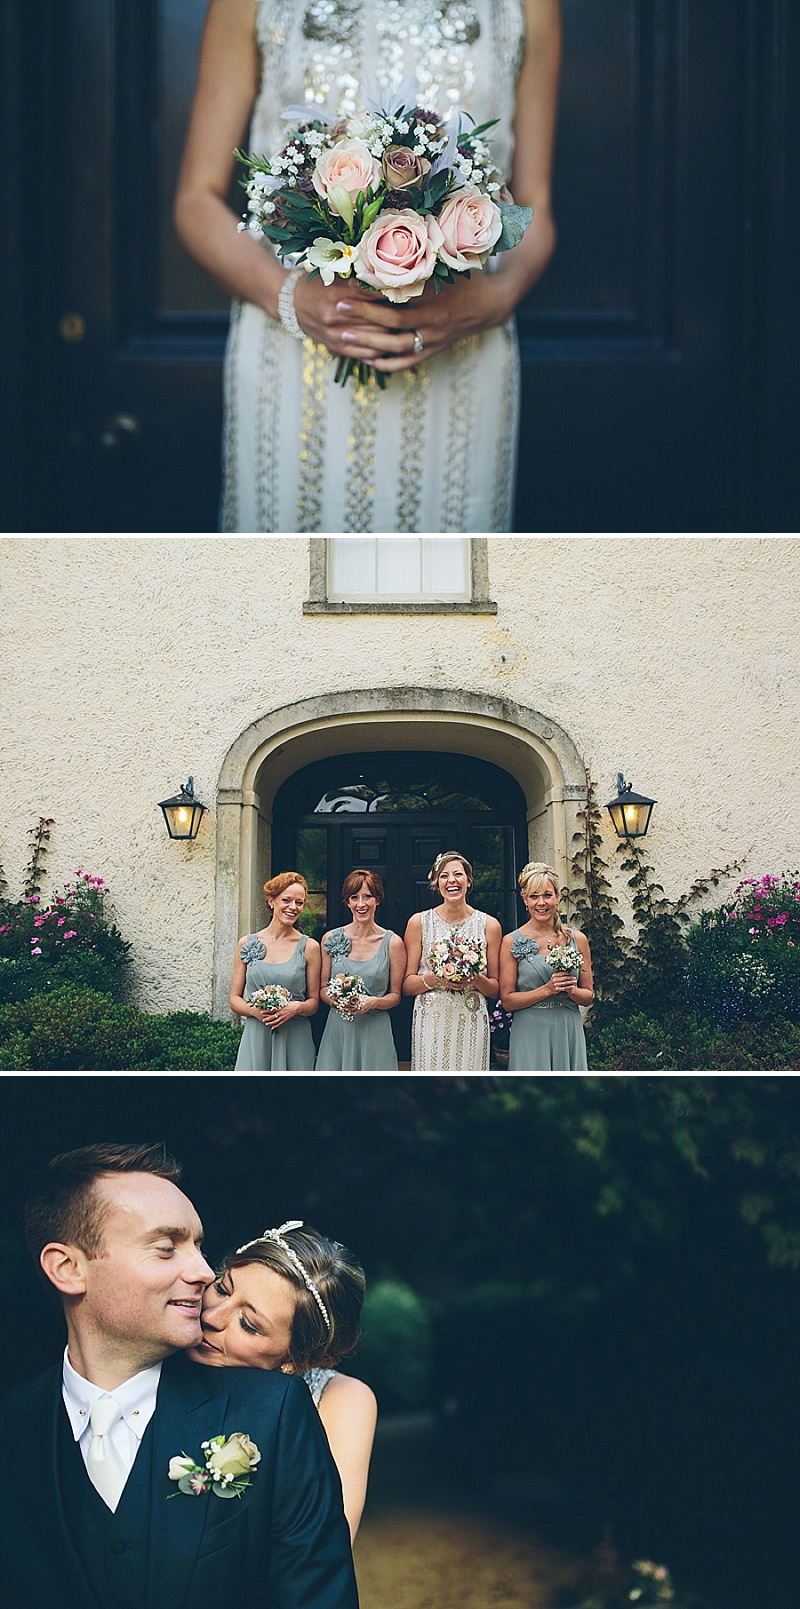 Art Deco and 1920s Inspired Wedding At The Matara Centre Gloucestershire With Bride In Joy By Jenny Packham and Bridesmaids in No 1 by Jenny Packham At Debenhams With Vintage Details and Speakeasy Themed Cocktails 1